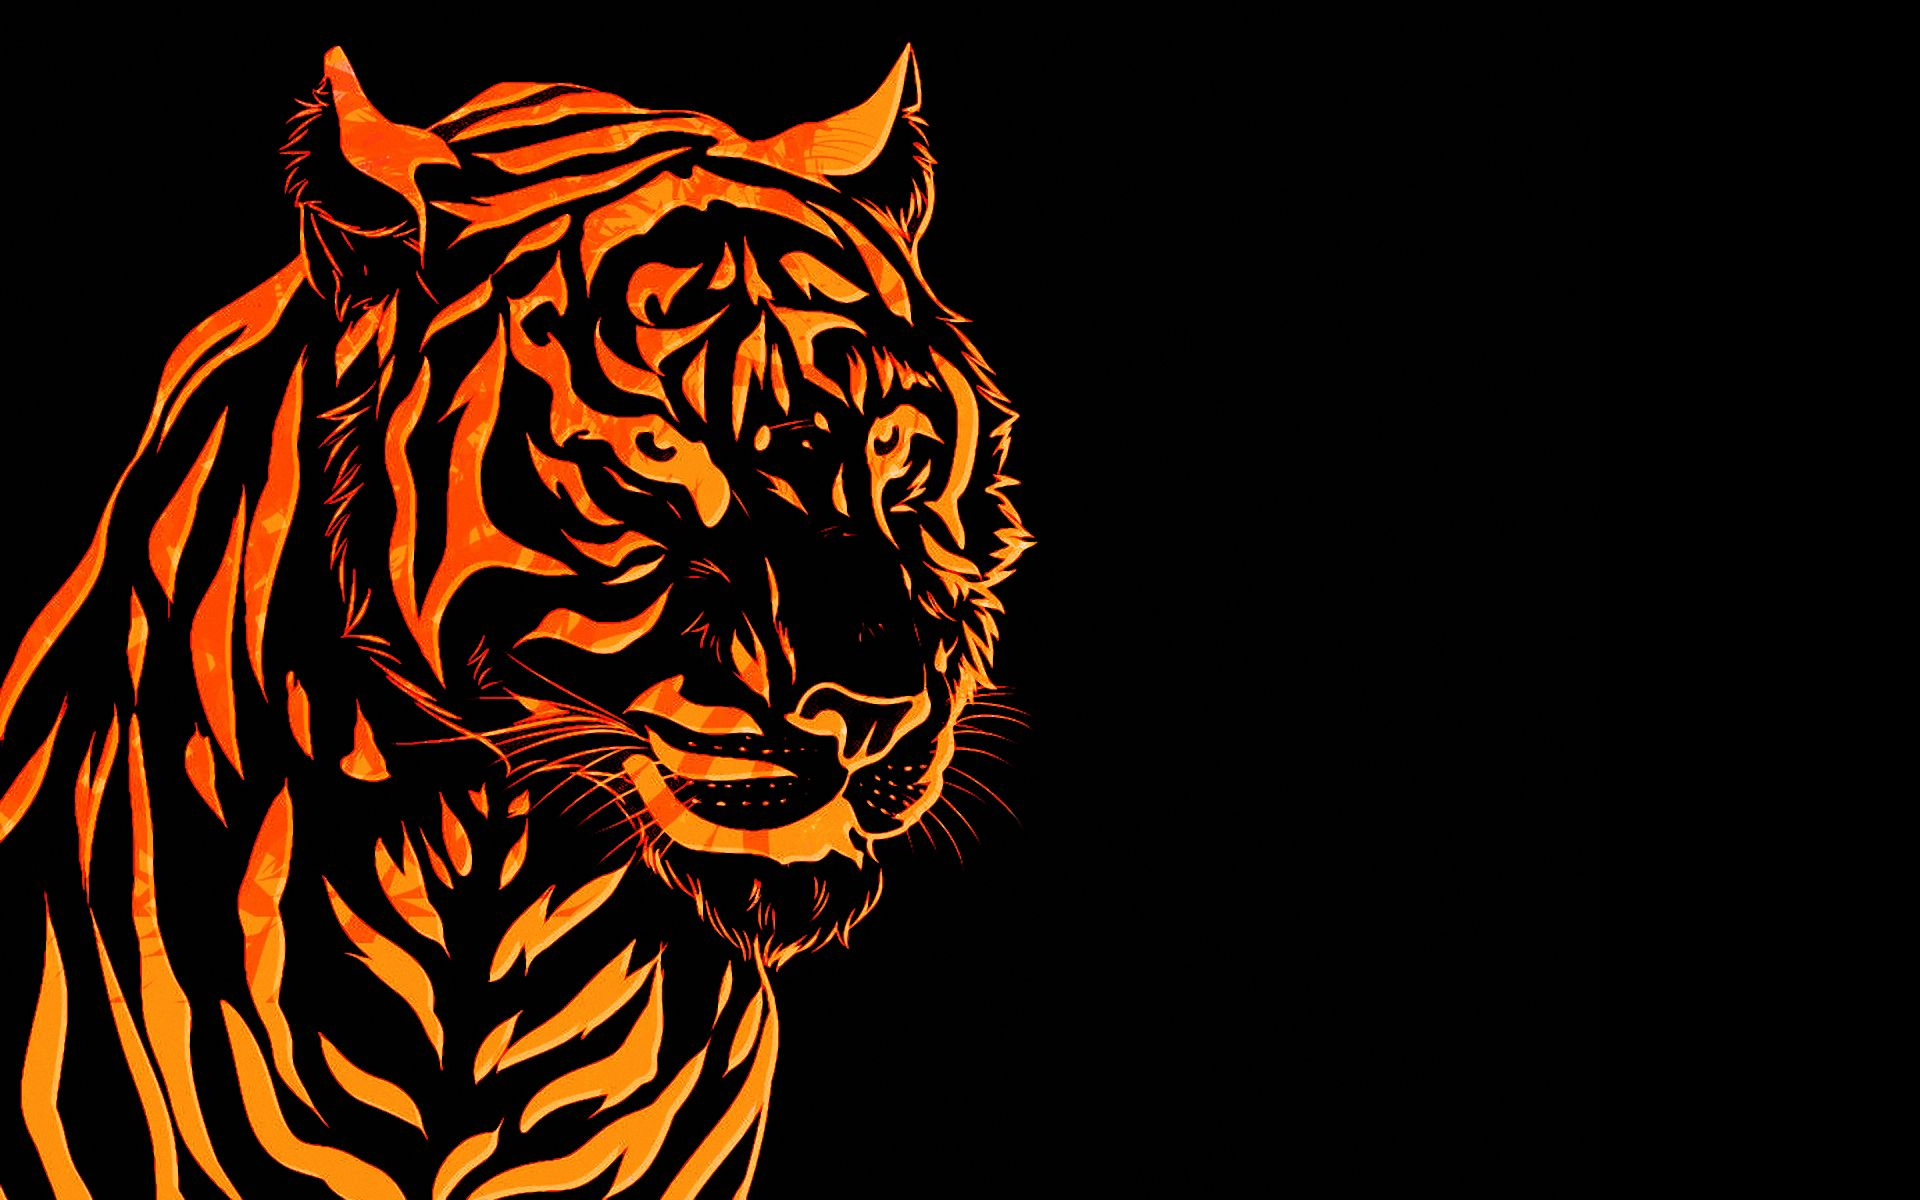 Abstract Tiger Wallpapers Top Free Abstract Tiger Backgrounds